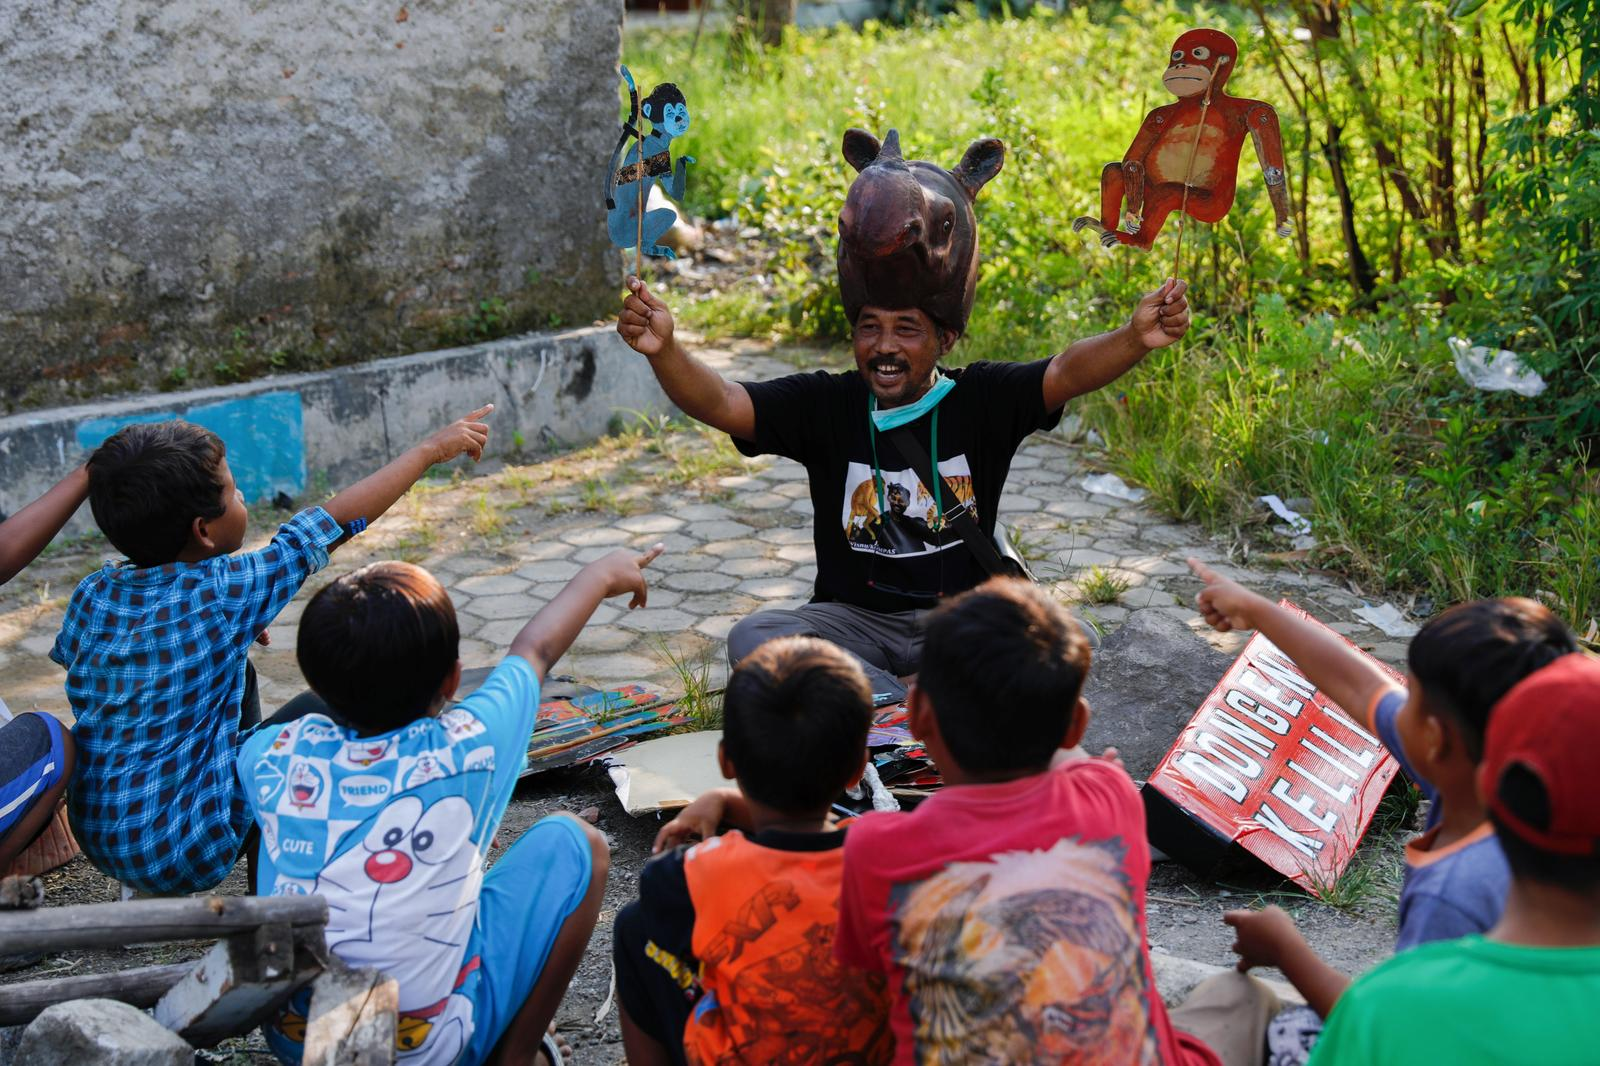 Samsudin, 50, wearing a rhino-hat holds cupboard puppets depicting Indonesia's endemic primates orangutan and long tail monkey, while performing fairy tales for the local children in Indramayu regency, West Java province, Indonesia, March 12, 2021. Photo: Reuters